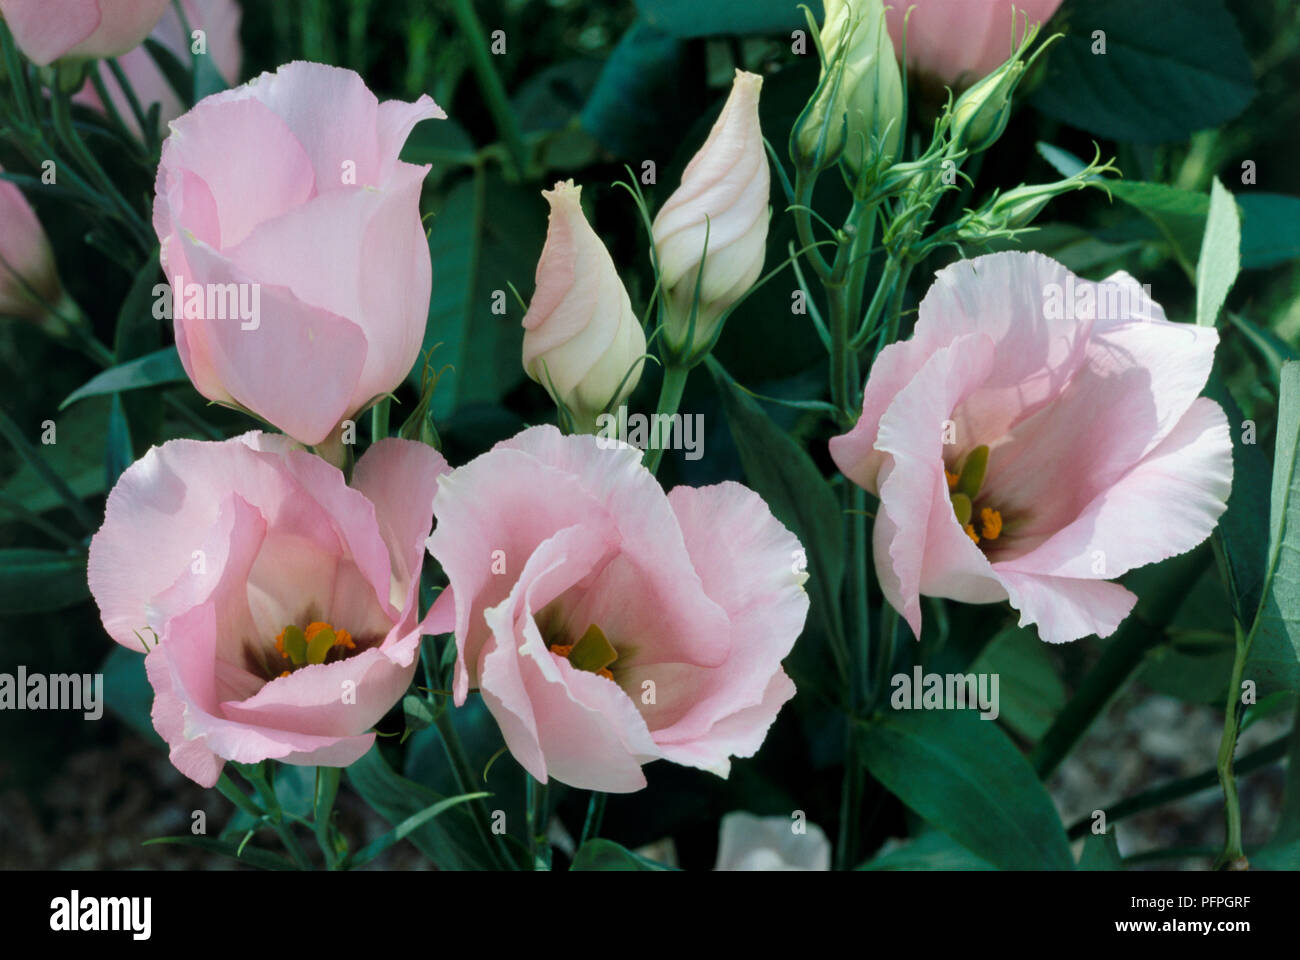 Eustoma grandiflorum Yodel Series (Texan bluebell), Lizianthus, pink flowers, unopened and unfurling buds, close-up - Stock Image